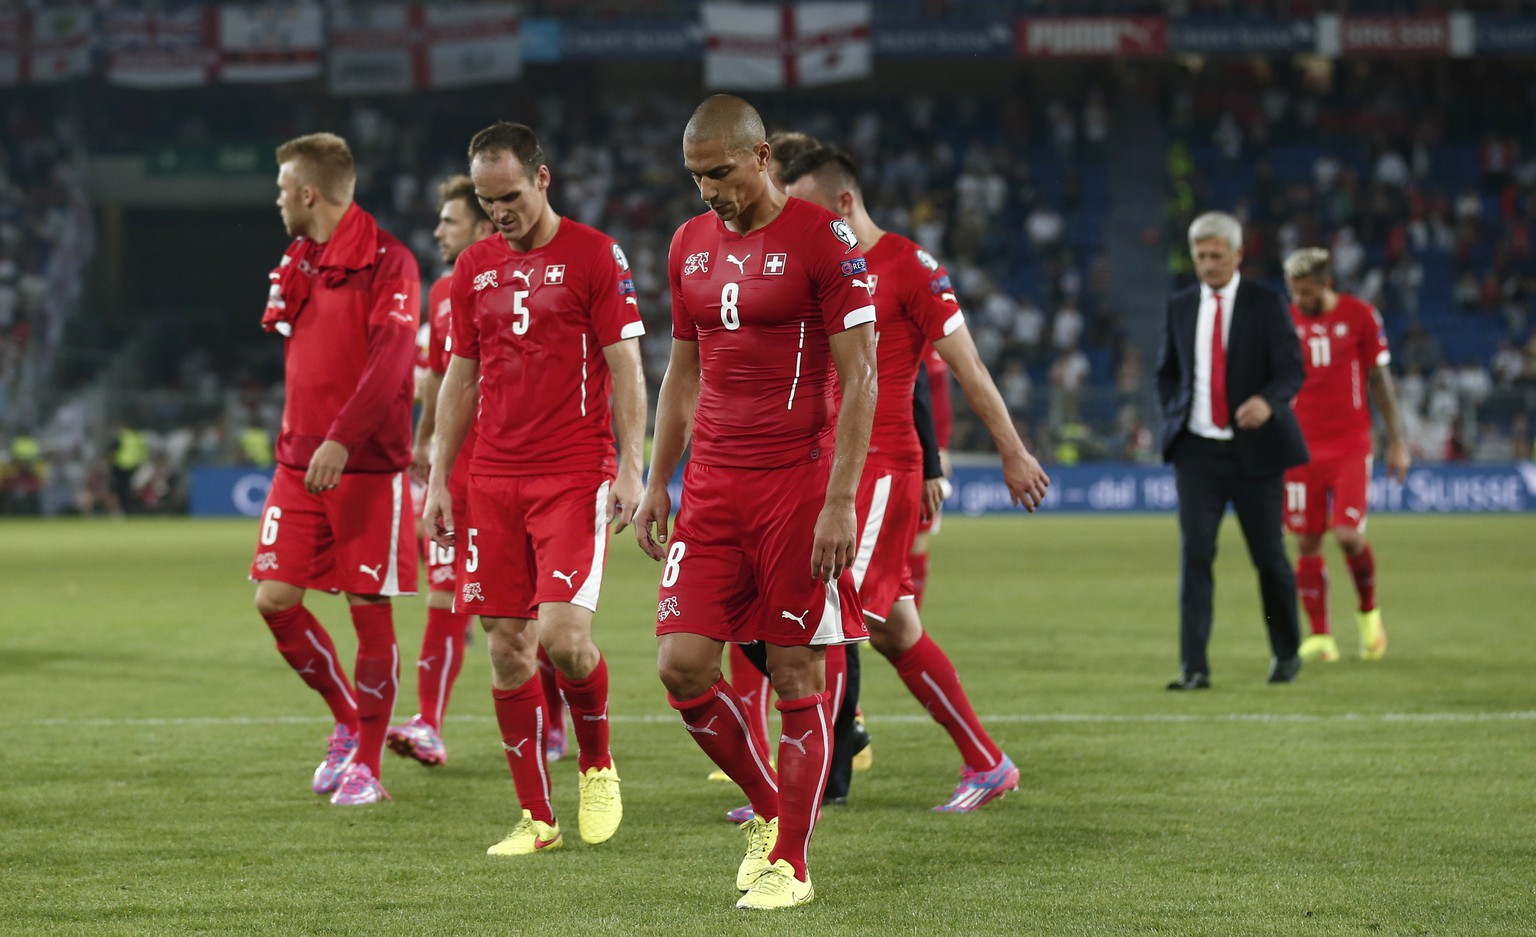 Swiss midfielder Goekhan Inler, front, and his teammates leave the pitch after the UEFA EURO 2016 qualifying match Switzerland against England at the St. Jakob-Park stadium in Basel, Switzerland, Monday, September 8, 2014. (KEYSTONE/Peter Klaunzer)